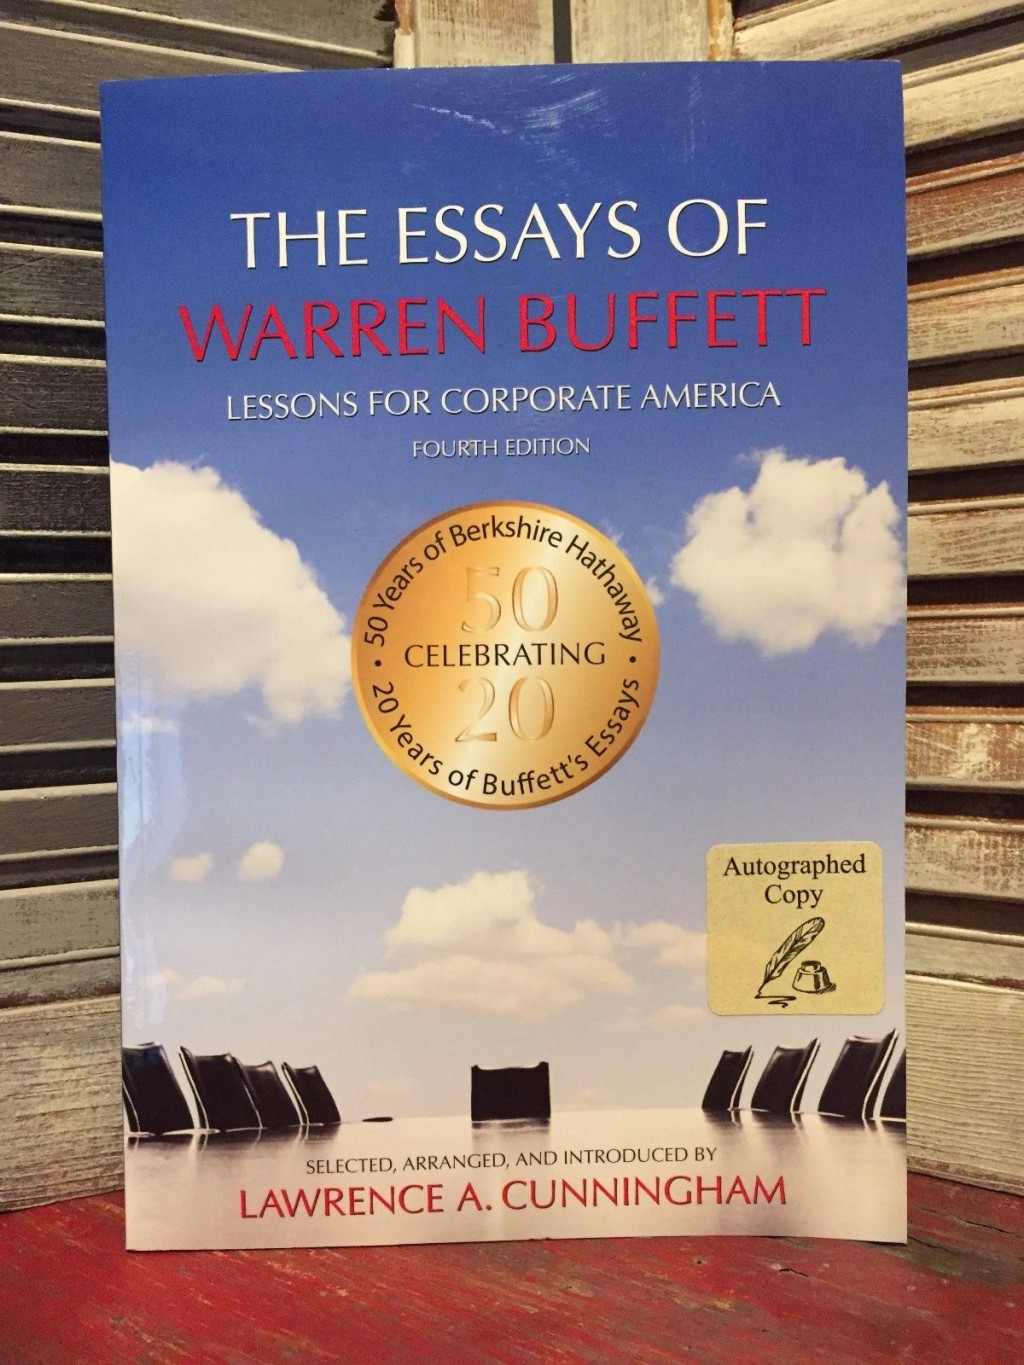 009 The Essays Of Warren Buffett Lessons For Corporate America Essay Example S Remarkable Third Edition 3rd Second Pdf Audio Book Large